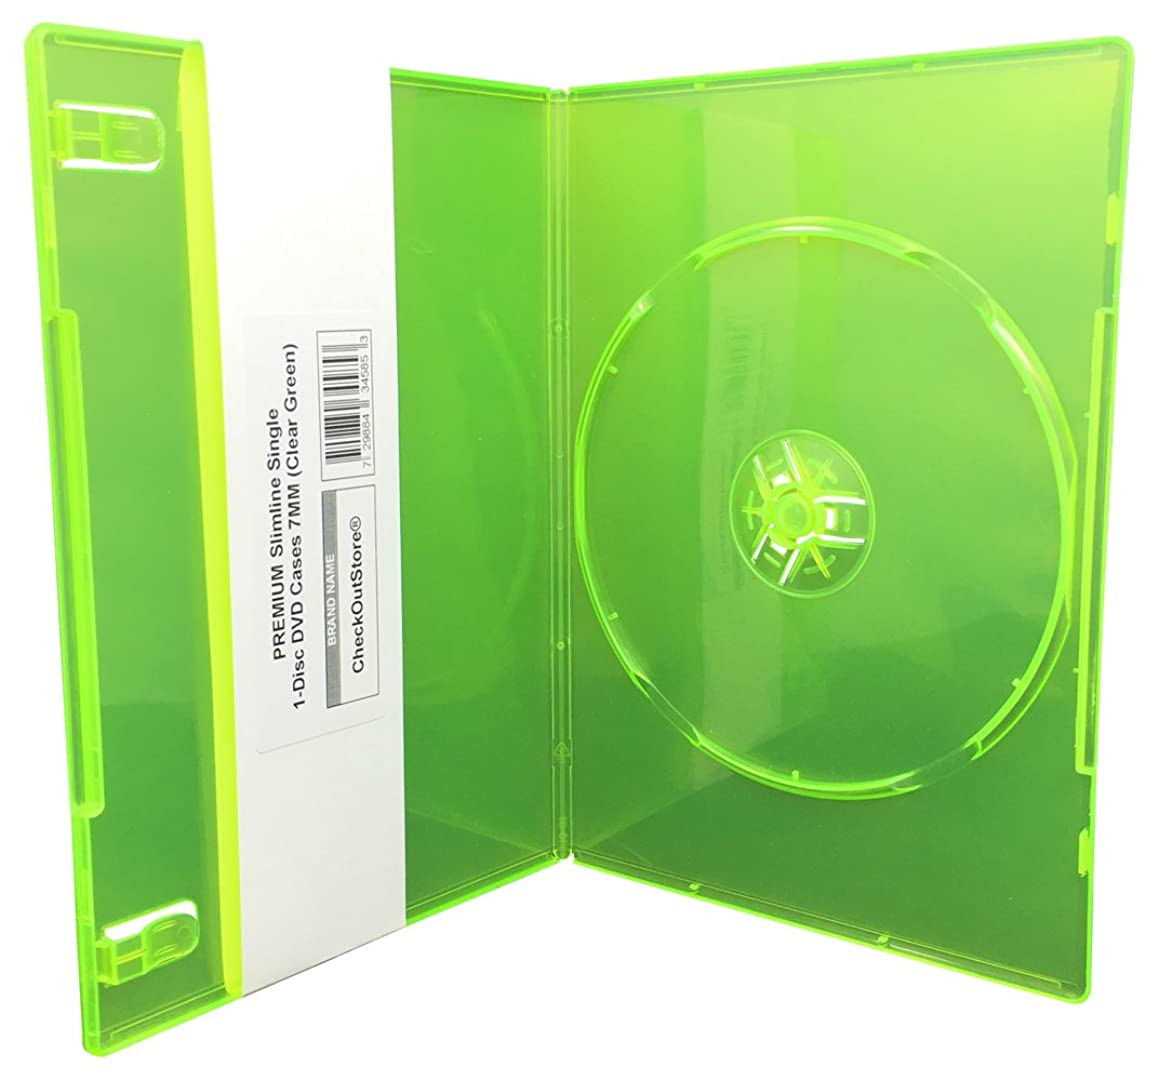 CheckOutStore (50) Premium Slimline Single 1-Disc DVD Cases 7mm (Clear Green)